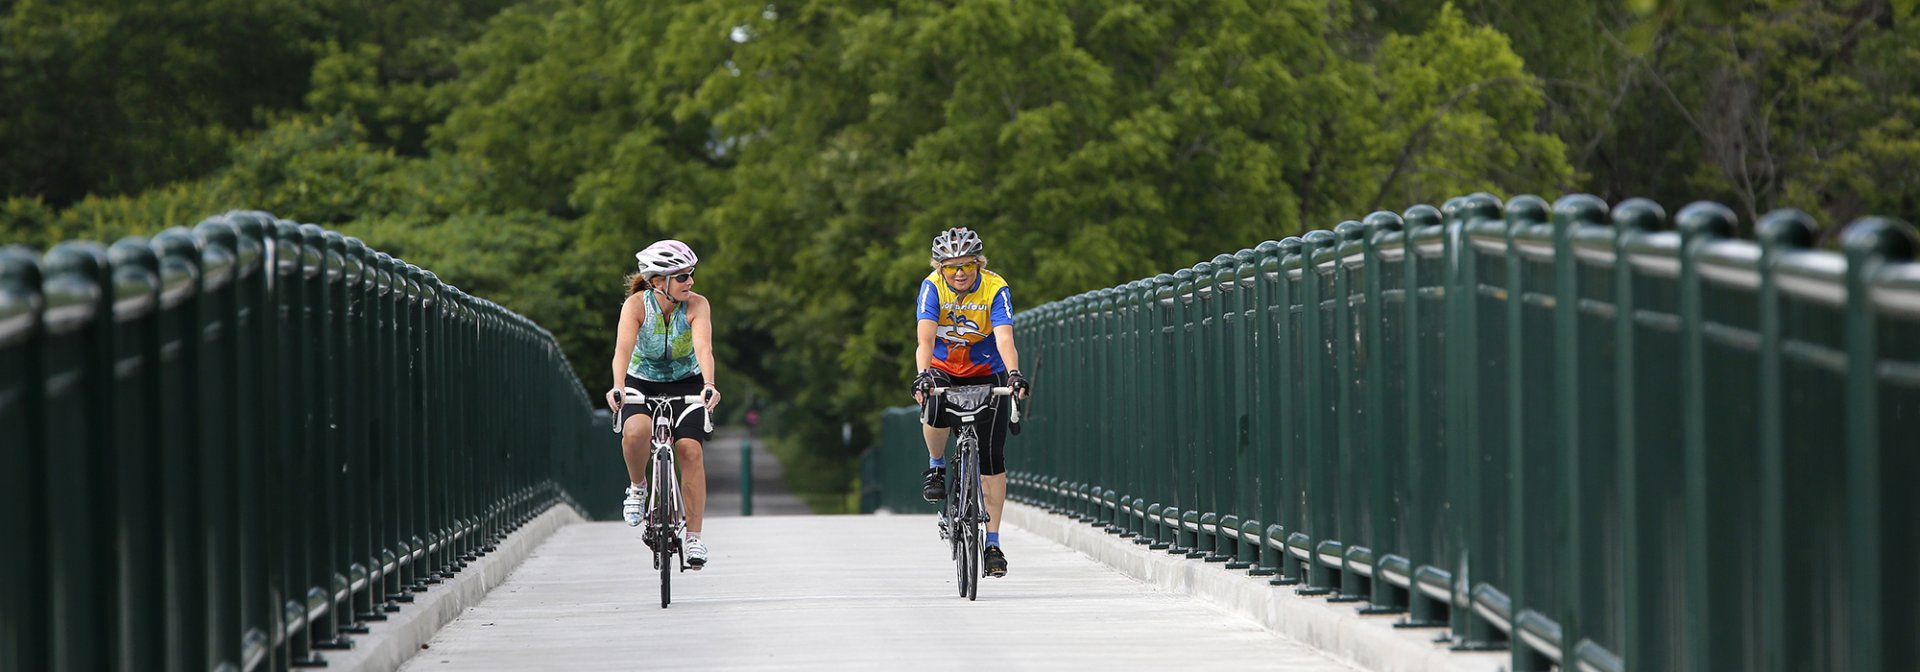 Erie Canalway Budget Tour in New York, USA - Cycling Tours